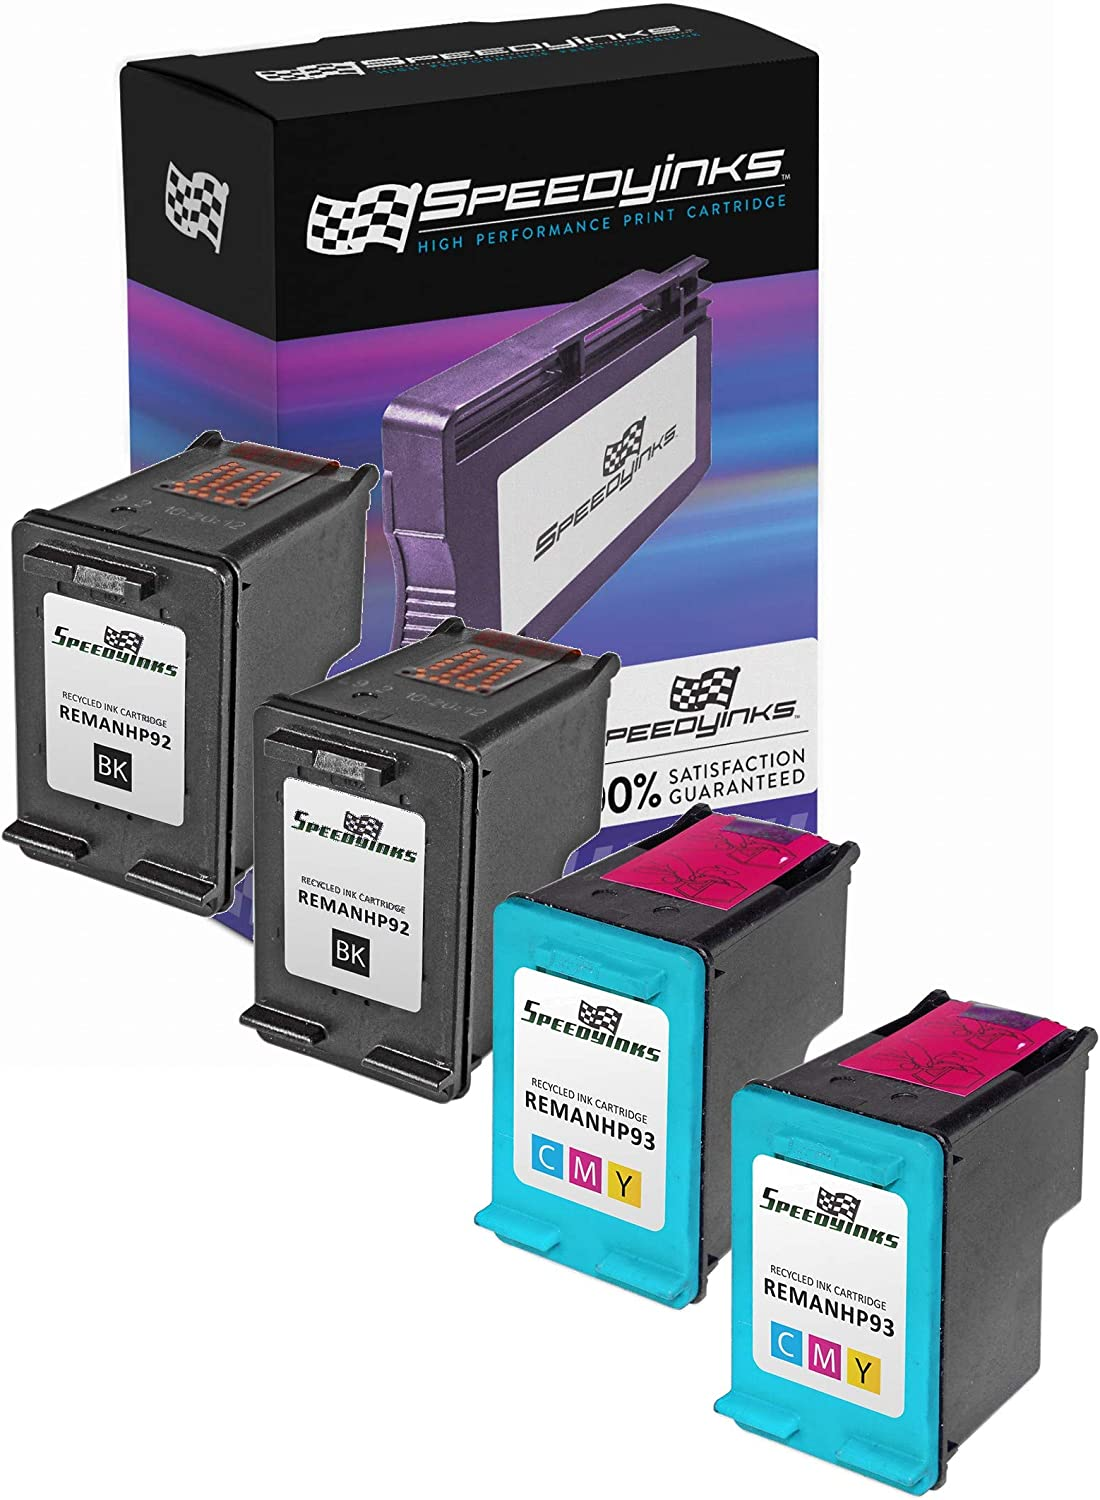 Speedy Inks Remanufactured Ink Cartridge Replacement for HP 92 and HP 93 (2 Black, 2 Color, 4-Pack)